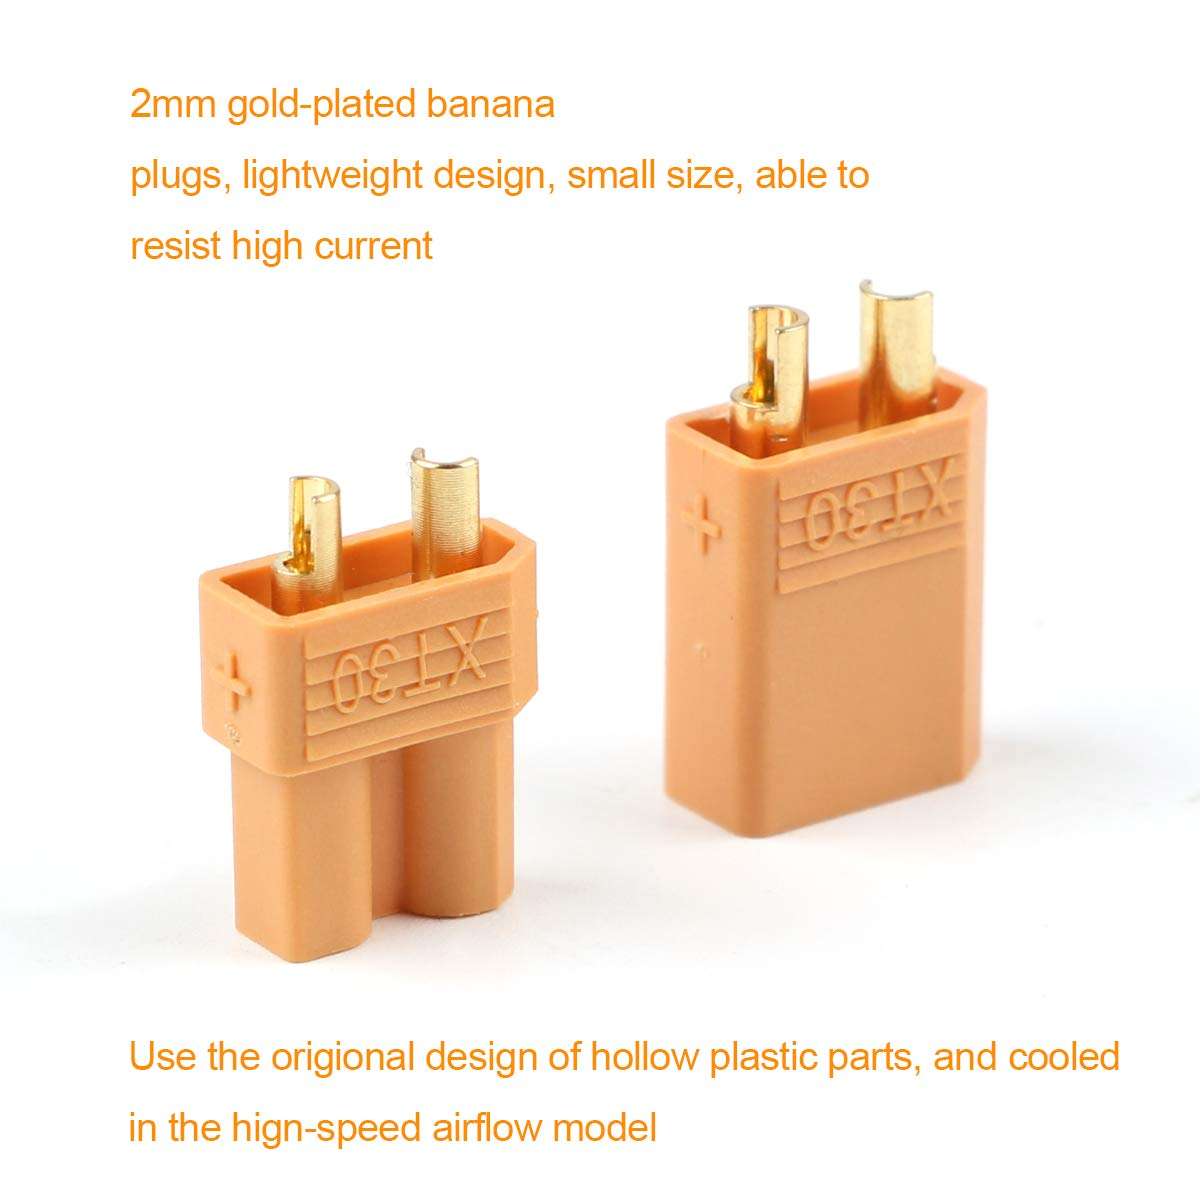 2 pairs XT90 battery connector set 4.5mm male gold plated banana plugZJP